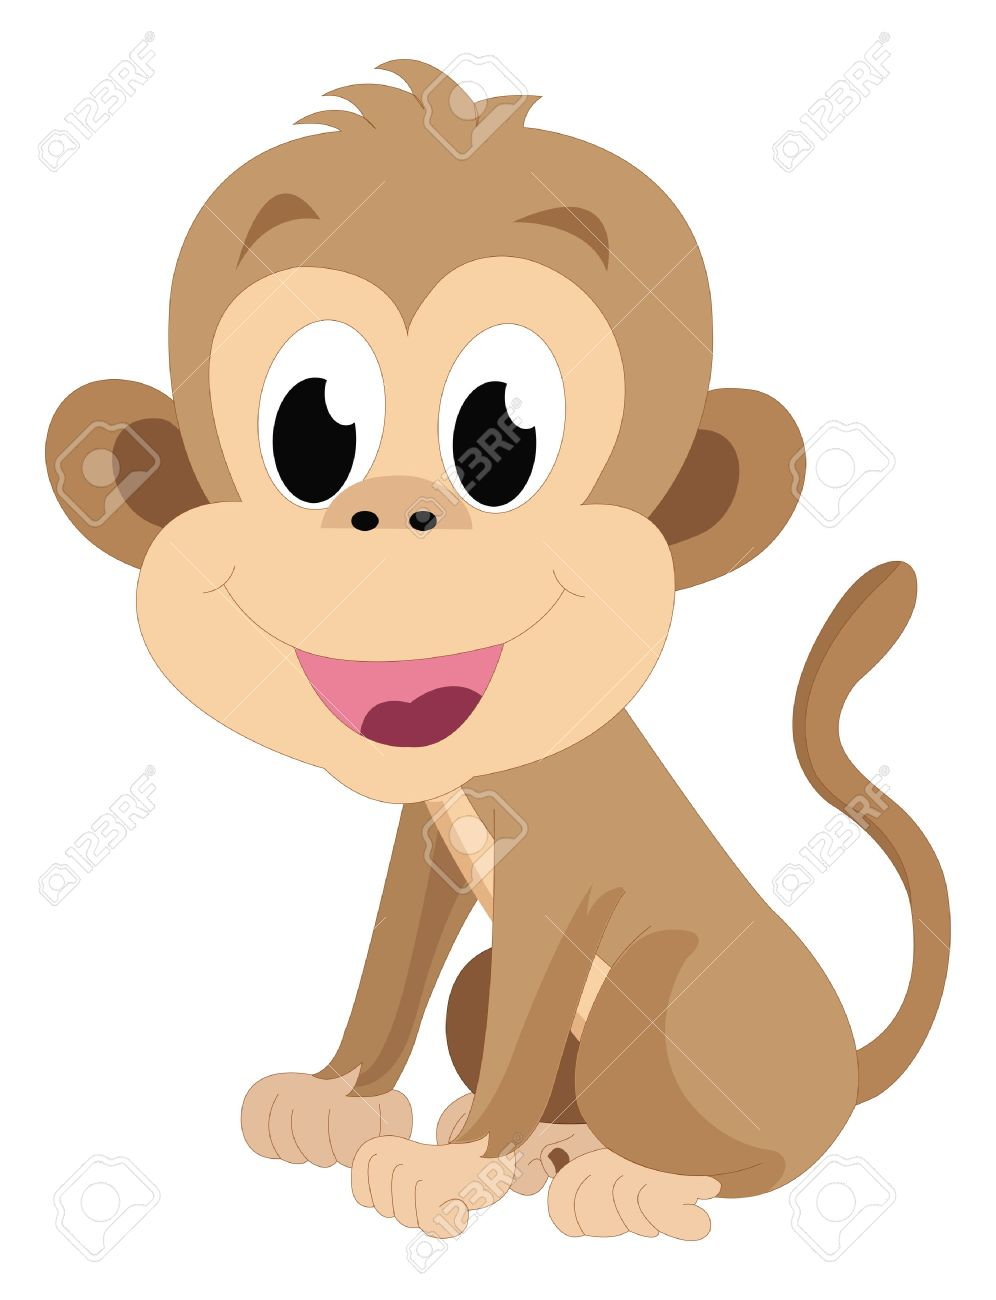 Baby monkey, brown, smiling, vector illustration Stock Vector - 22066769